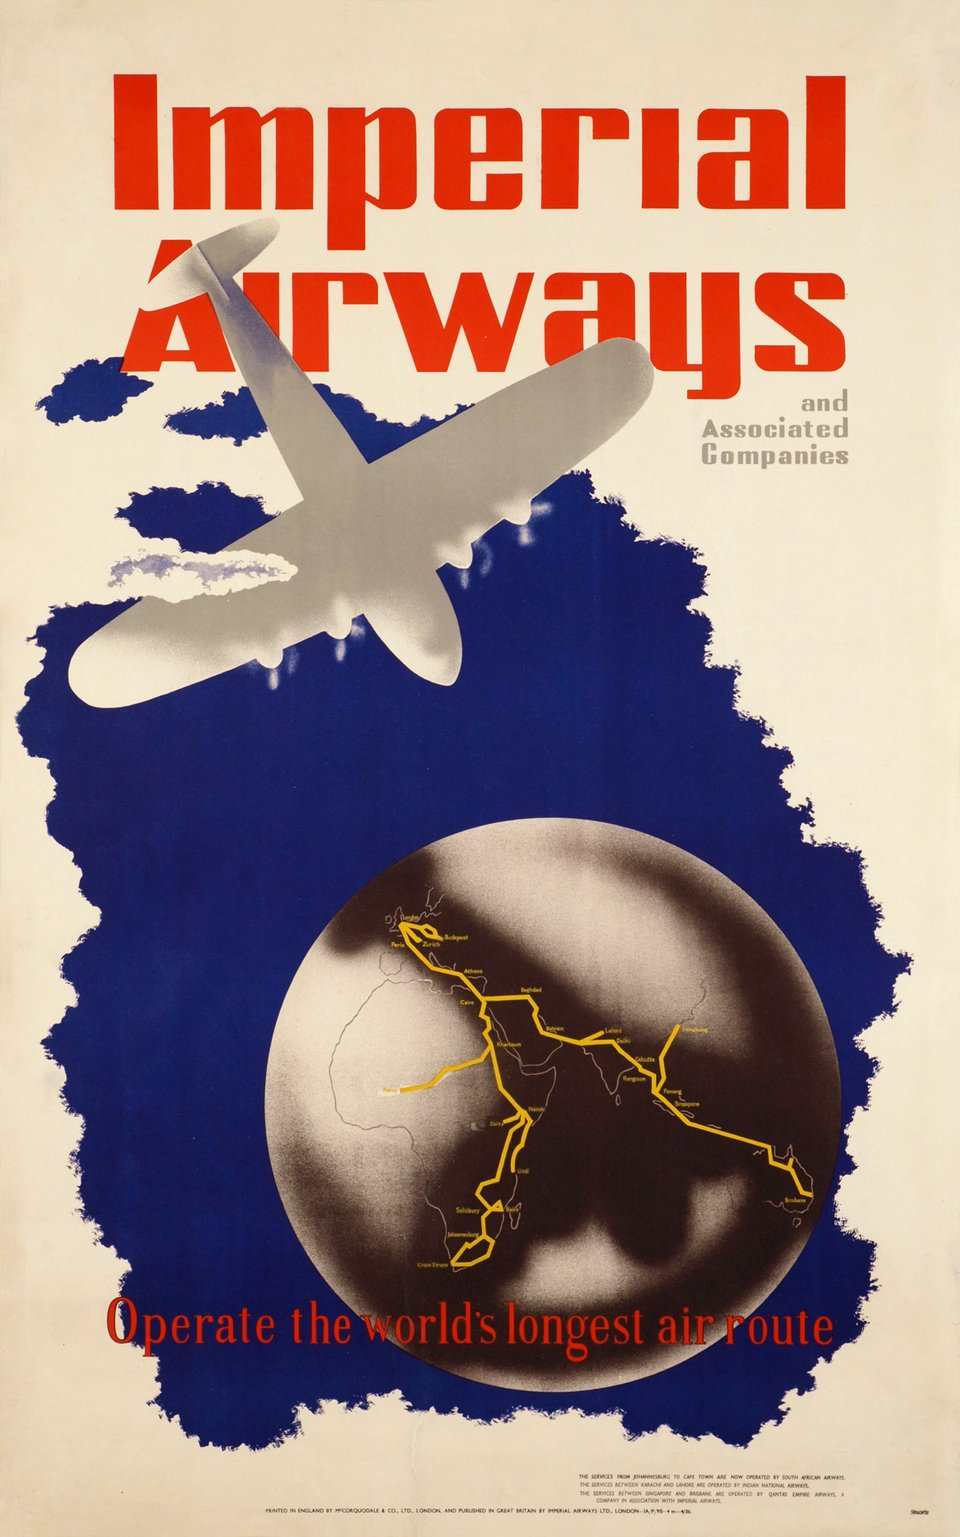 Imperial Airways operate the world's longest air route – Affiche ancienne –  STUARDS,  STUARTS – 1936